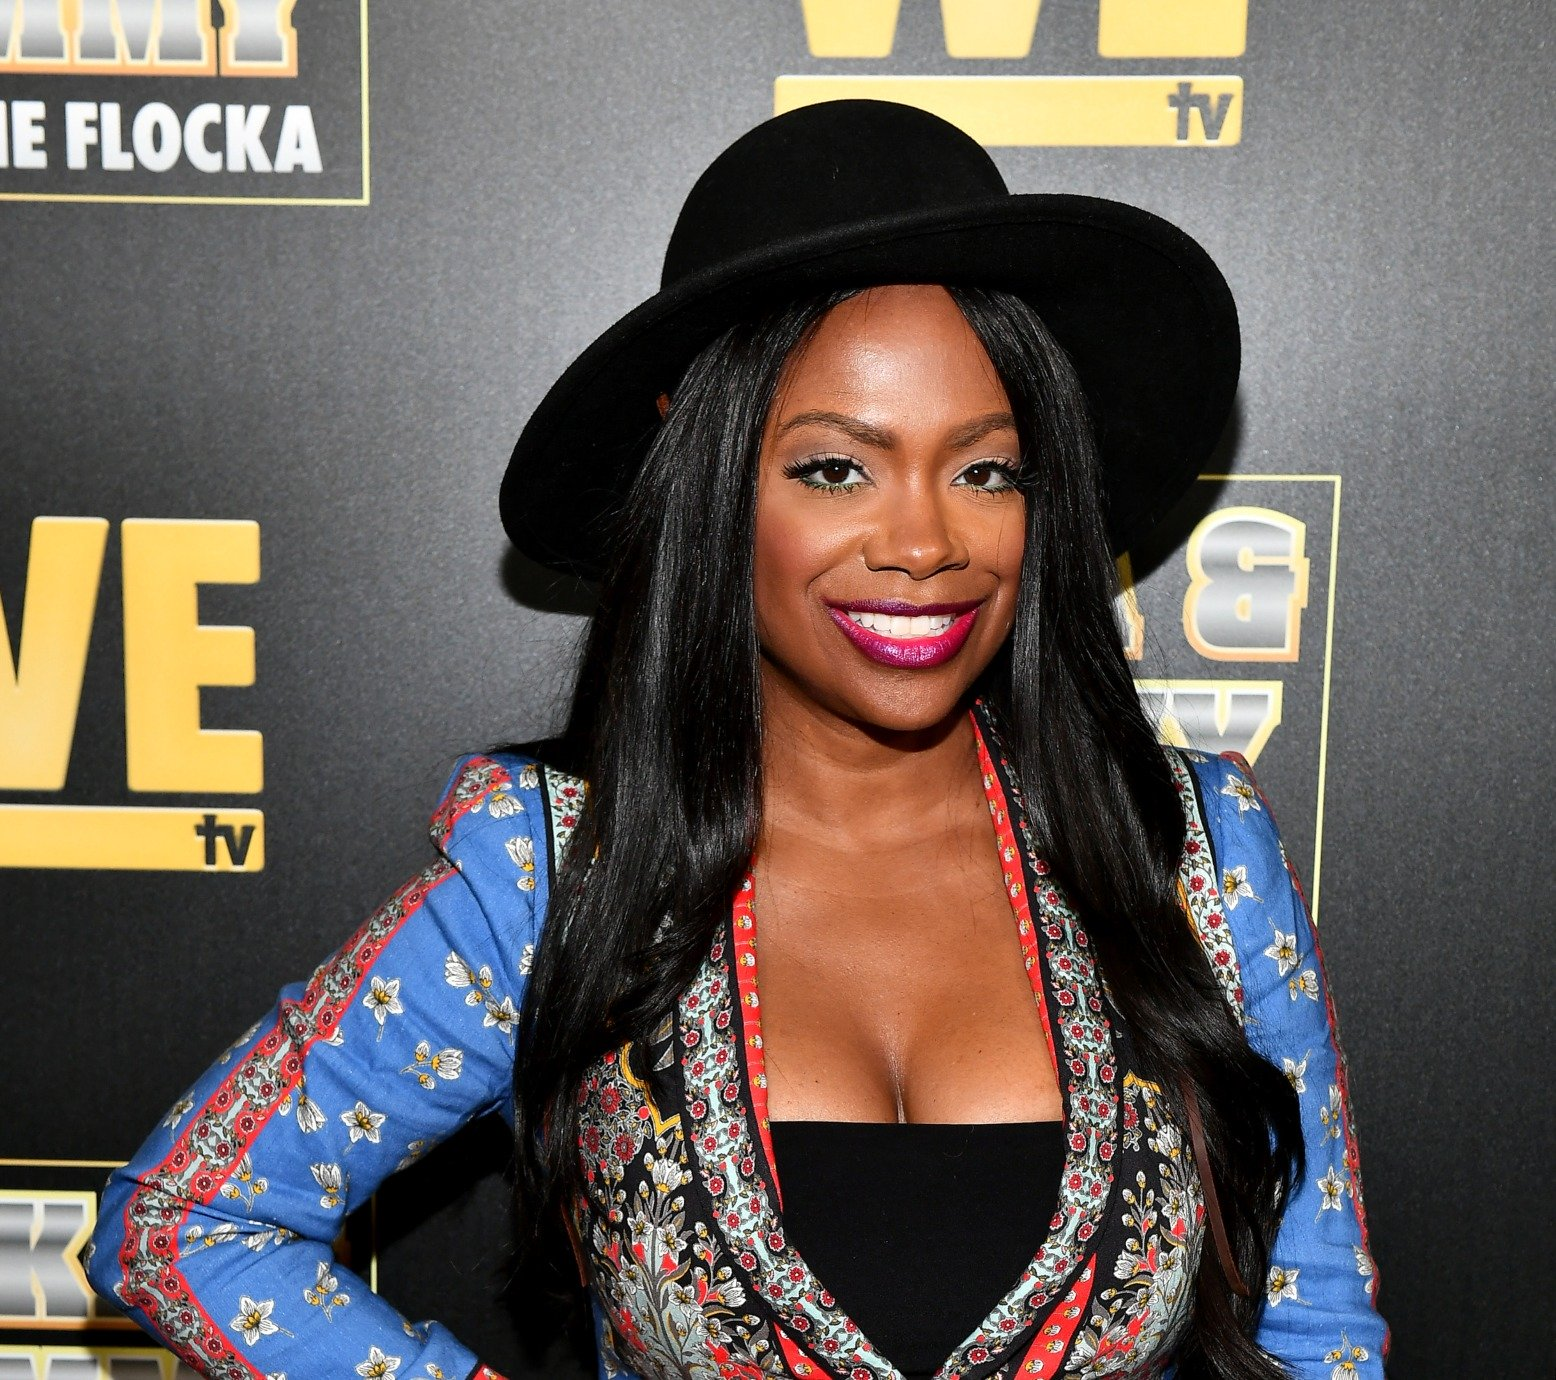 Kandi Burruss Says She's A Hot Girl Even With Her Extra Quarantine Pounds